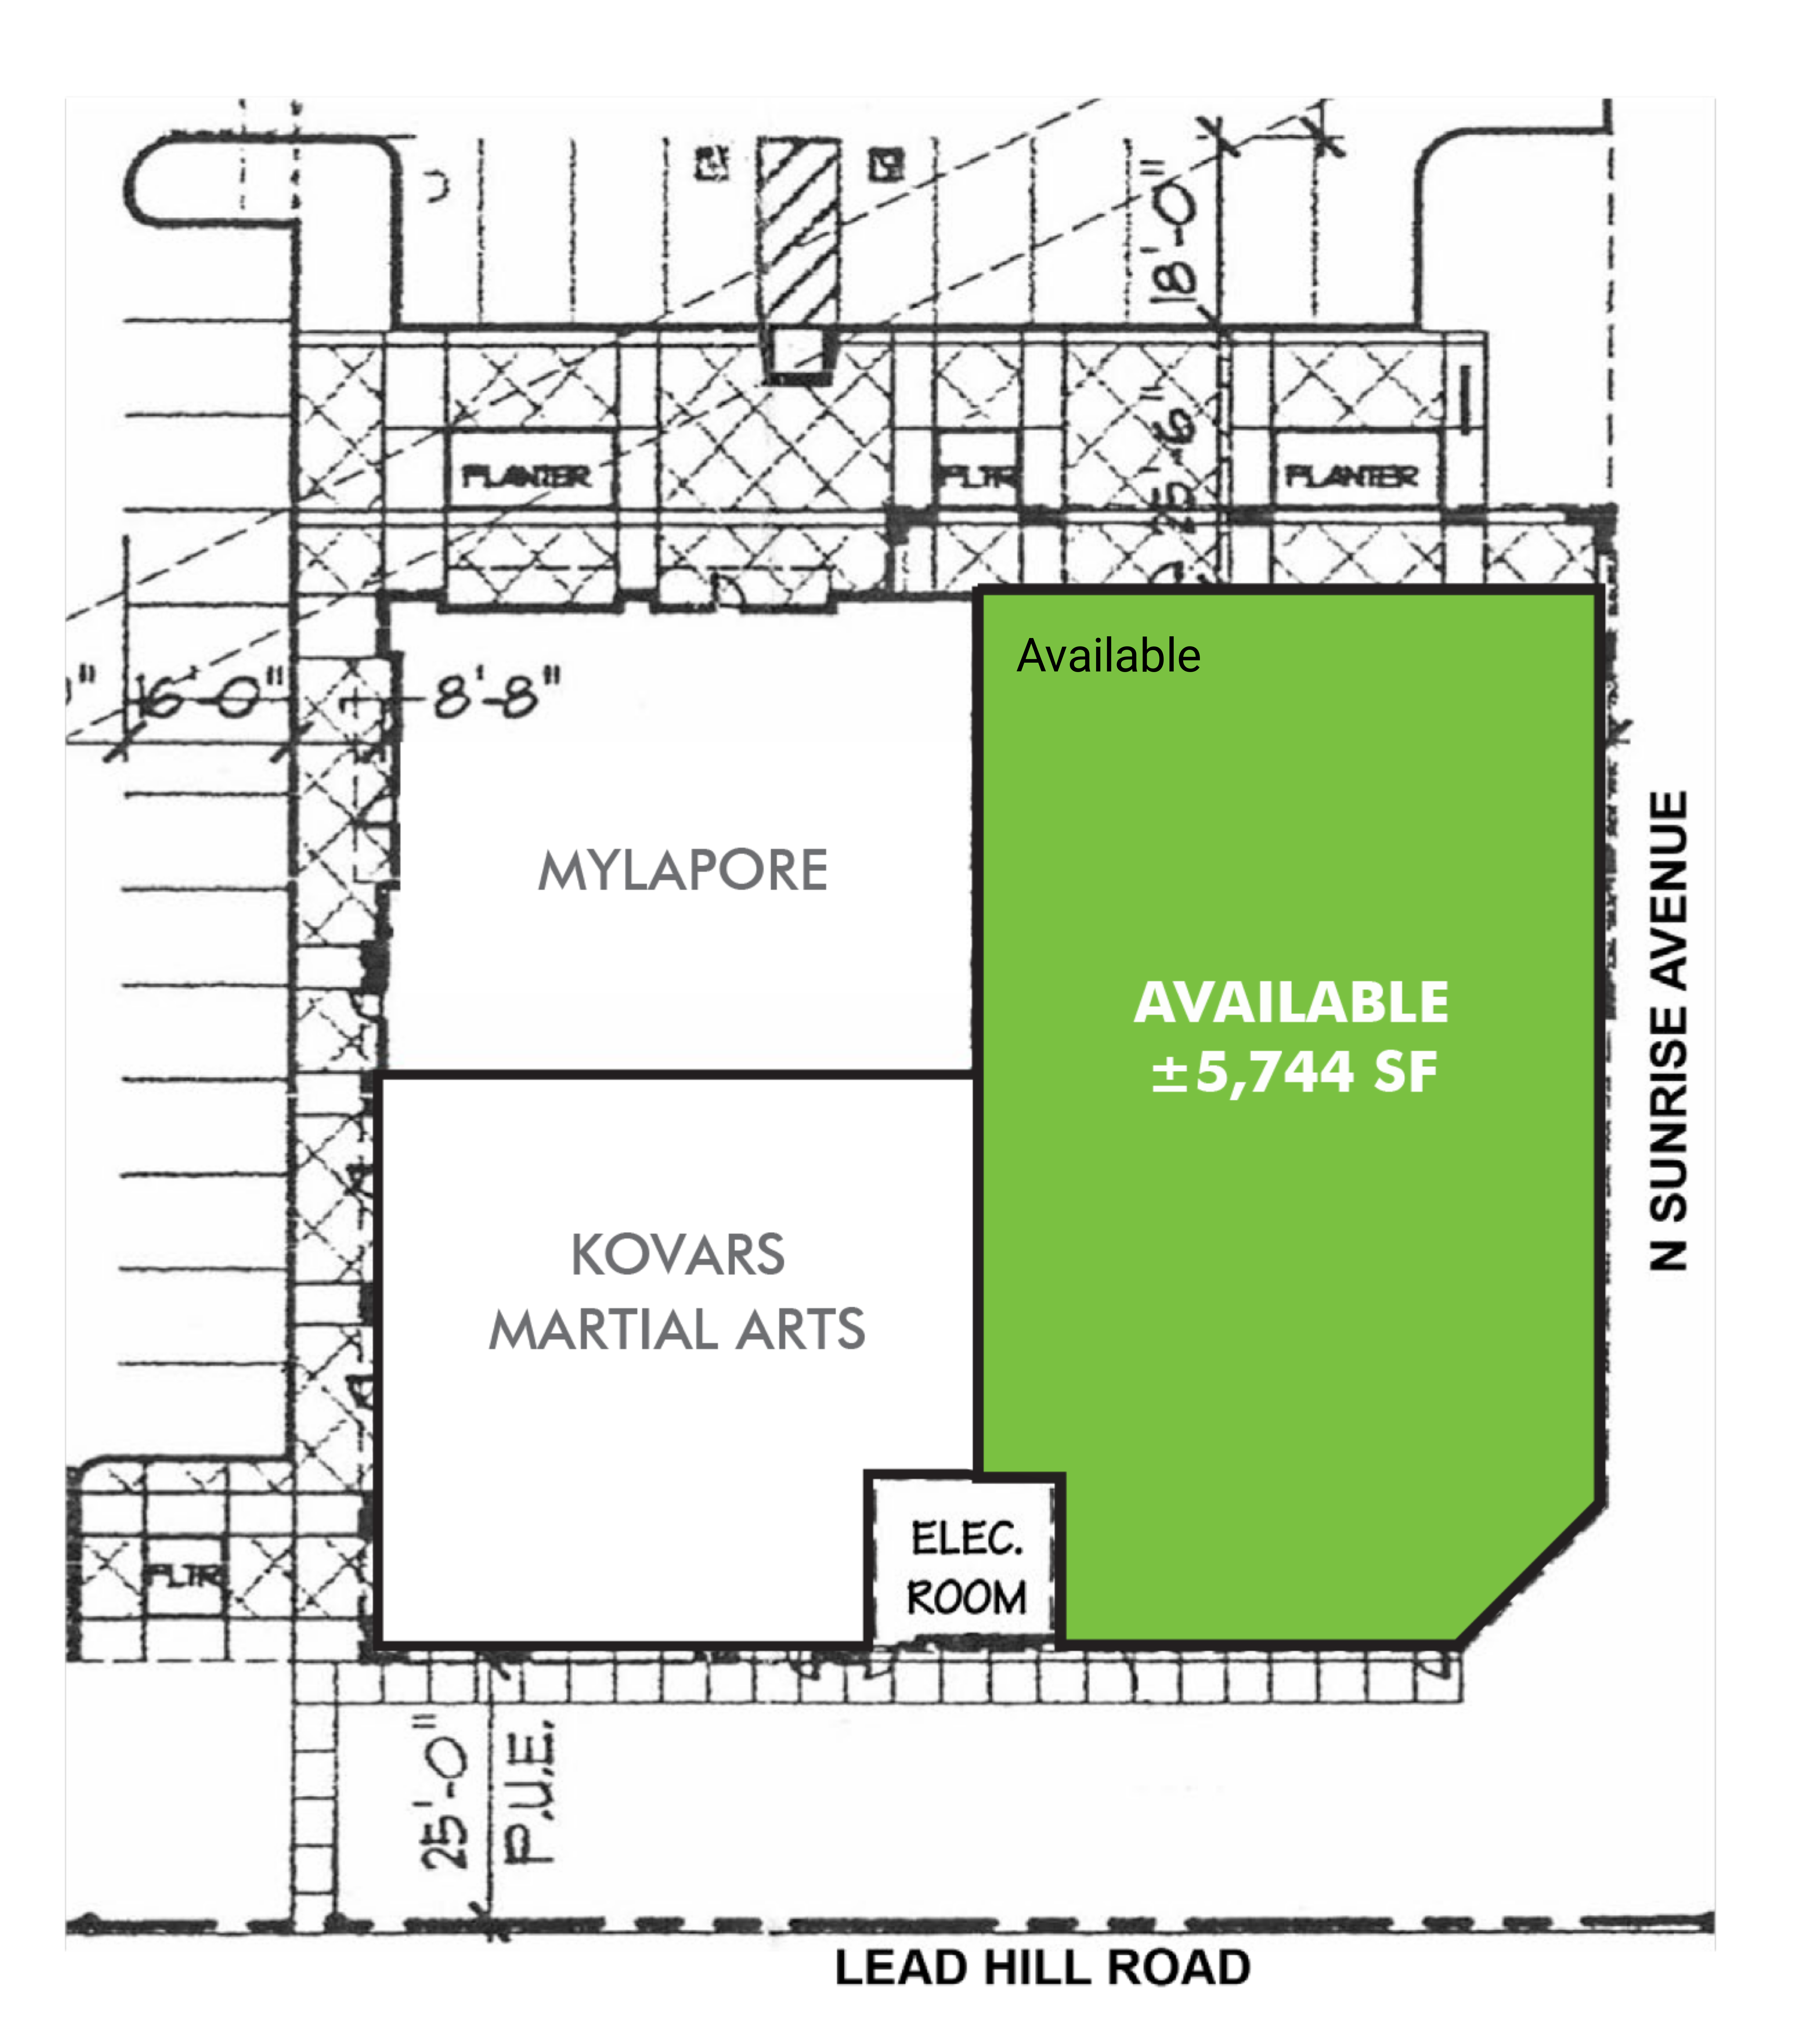 300 N Sunrise Ave: site plan